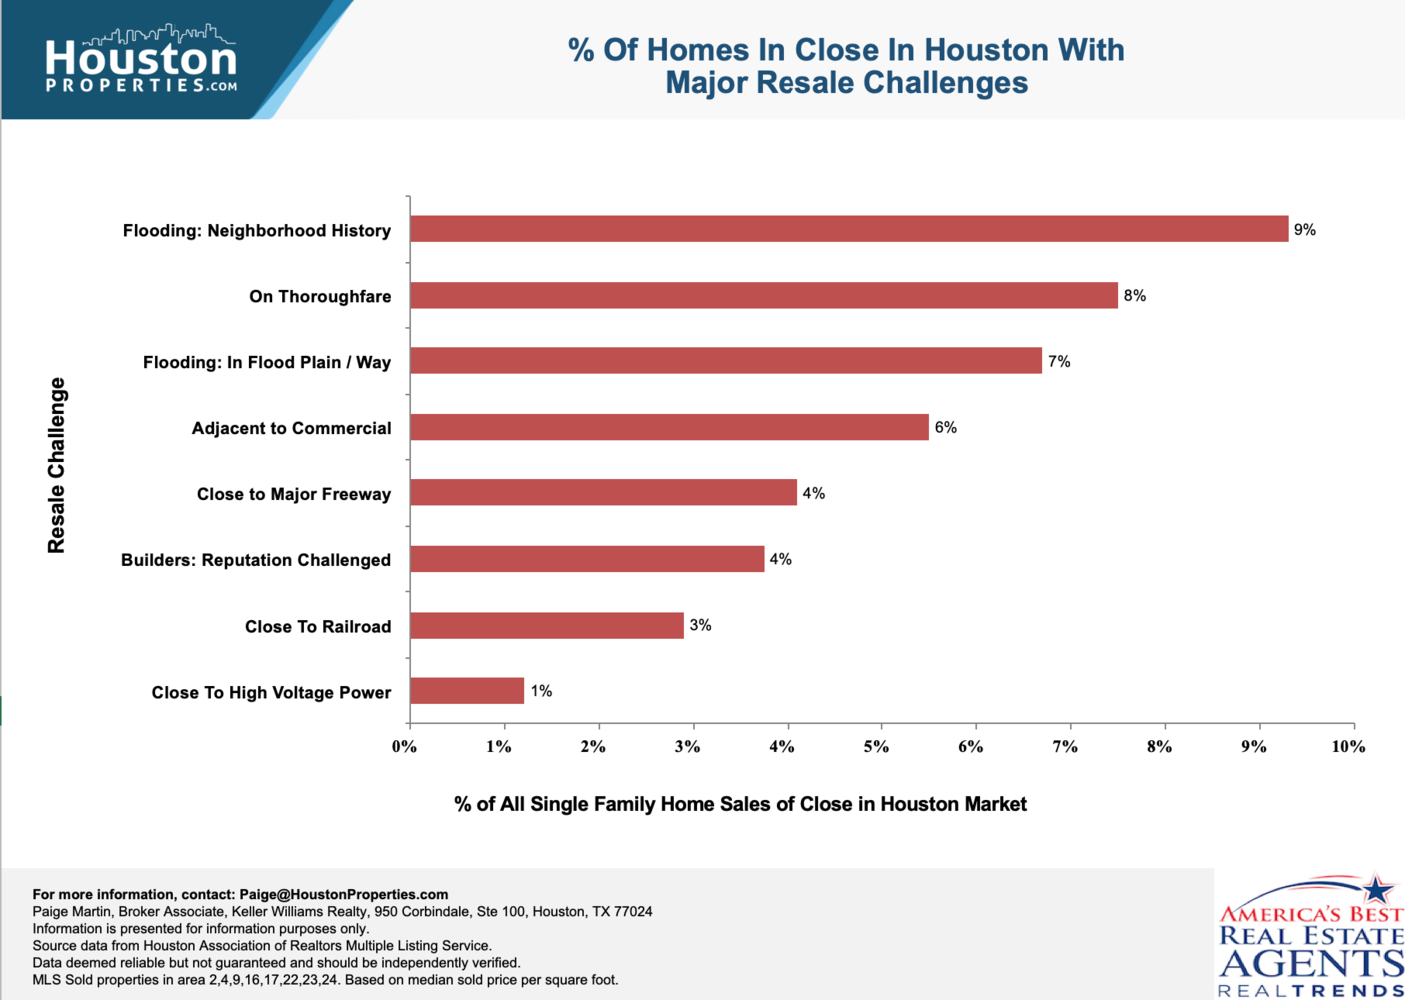 41% Of Houston Homes for Sale Had One or More Resale Issues